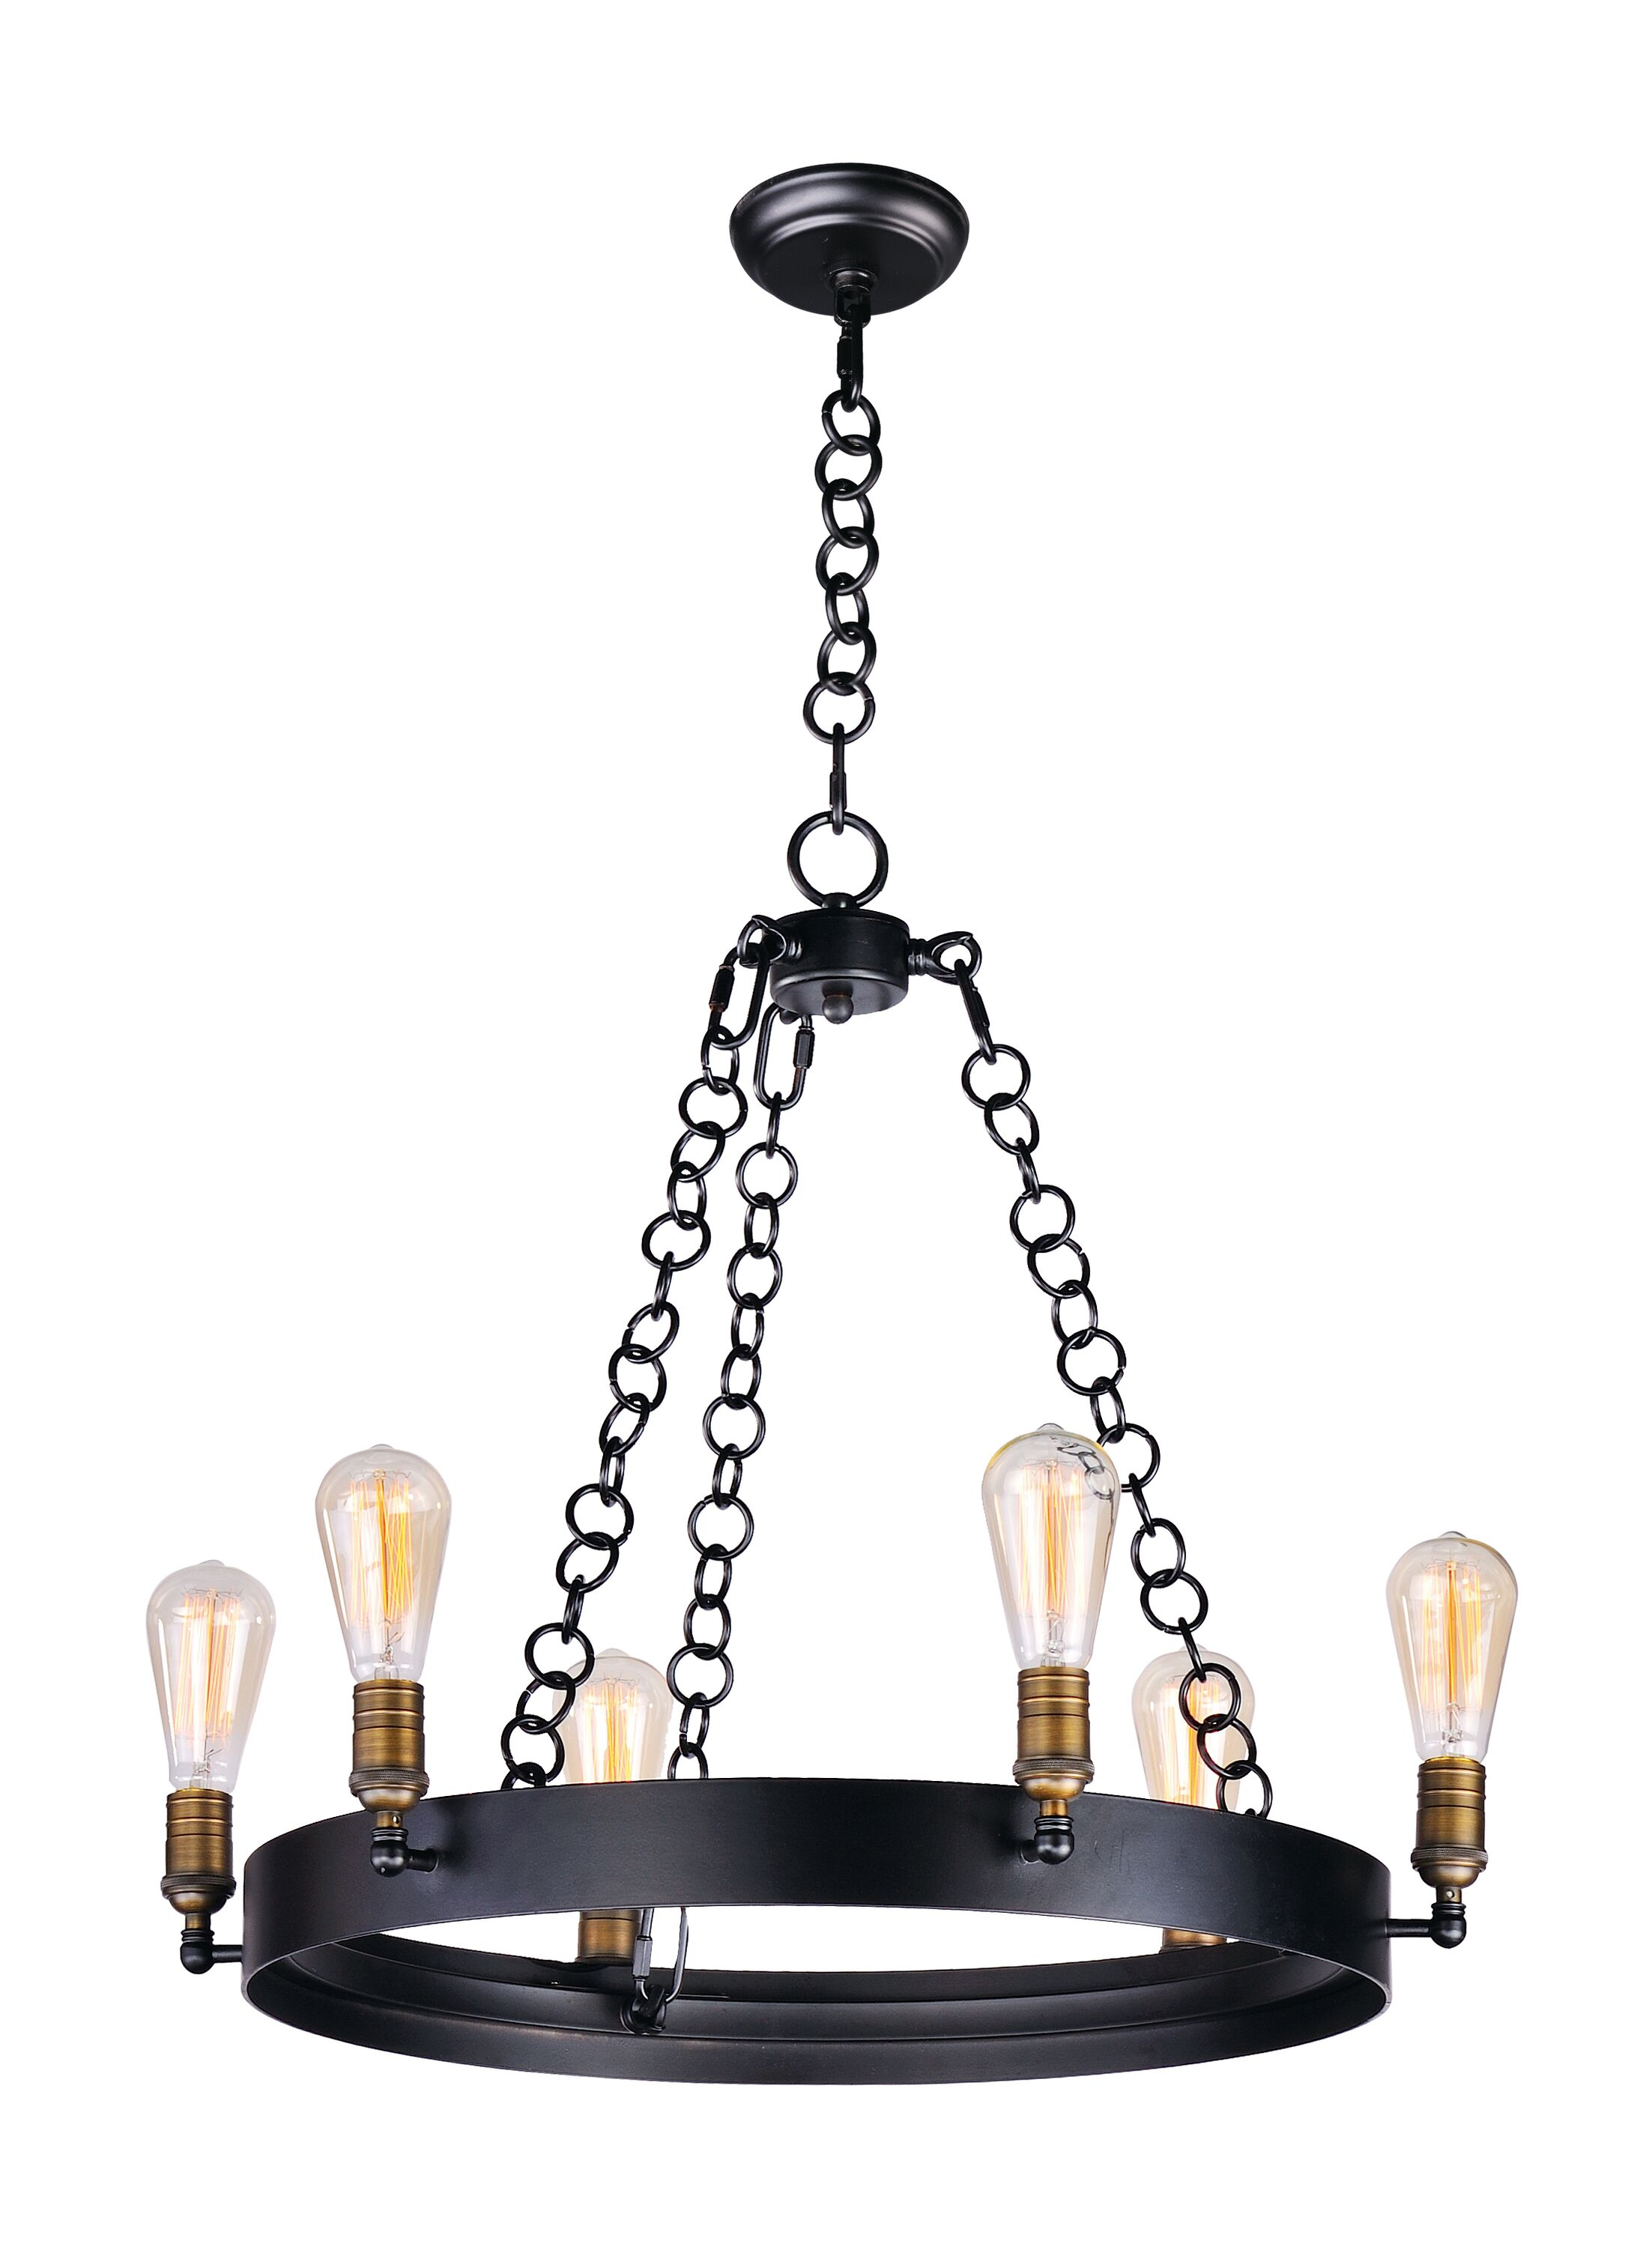 Harpa 6-Light Wagon Wheel Chandelier Bulb Type: MB ST64